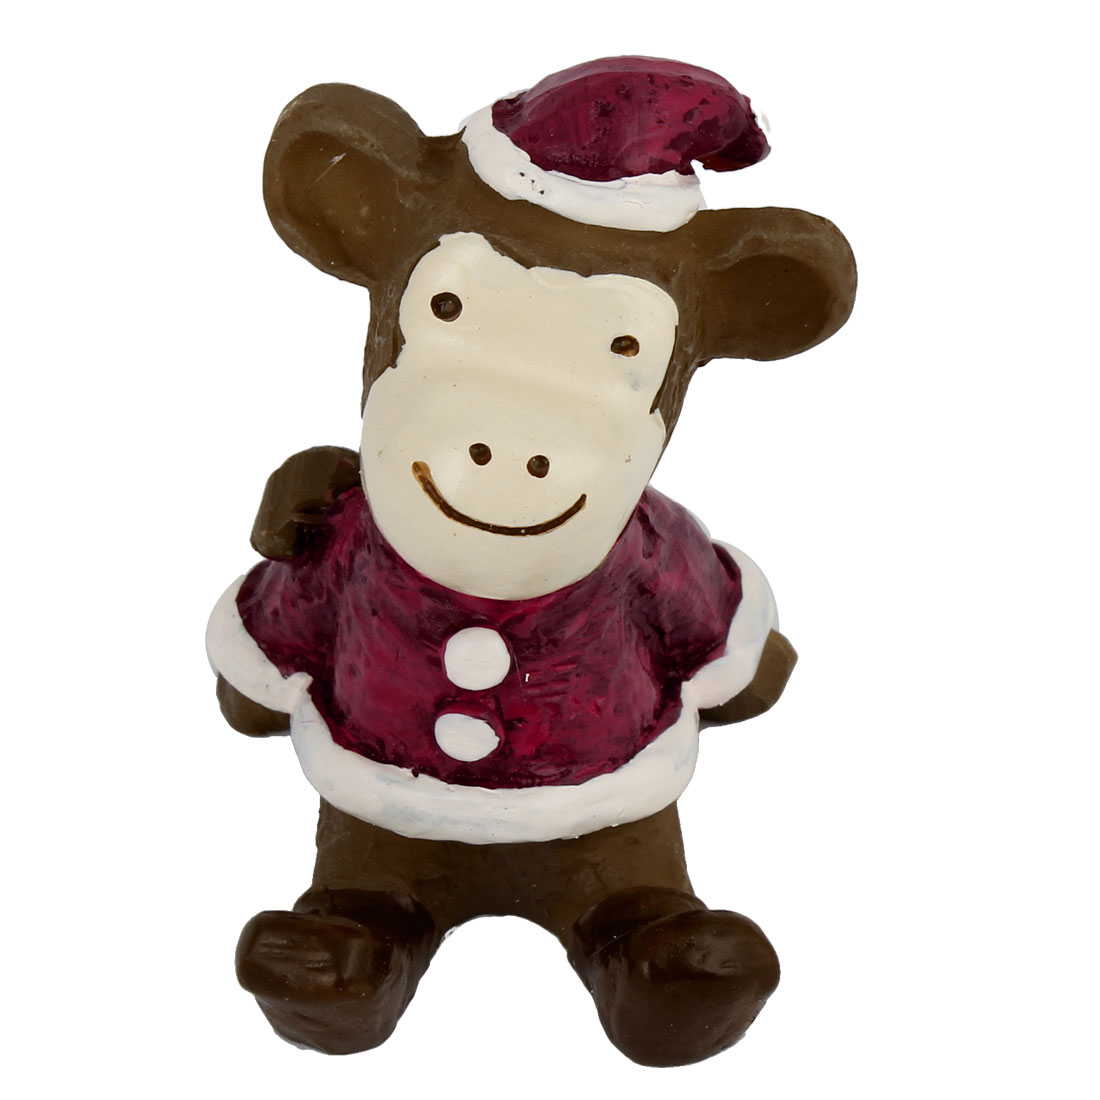 Christmas Adornment Dressing Up Monkey Ornament Crafts Burgundy